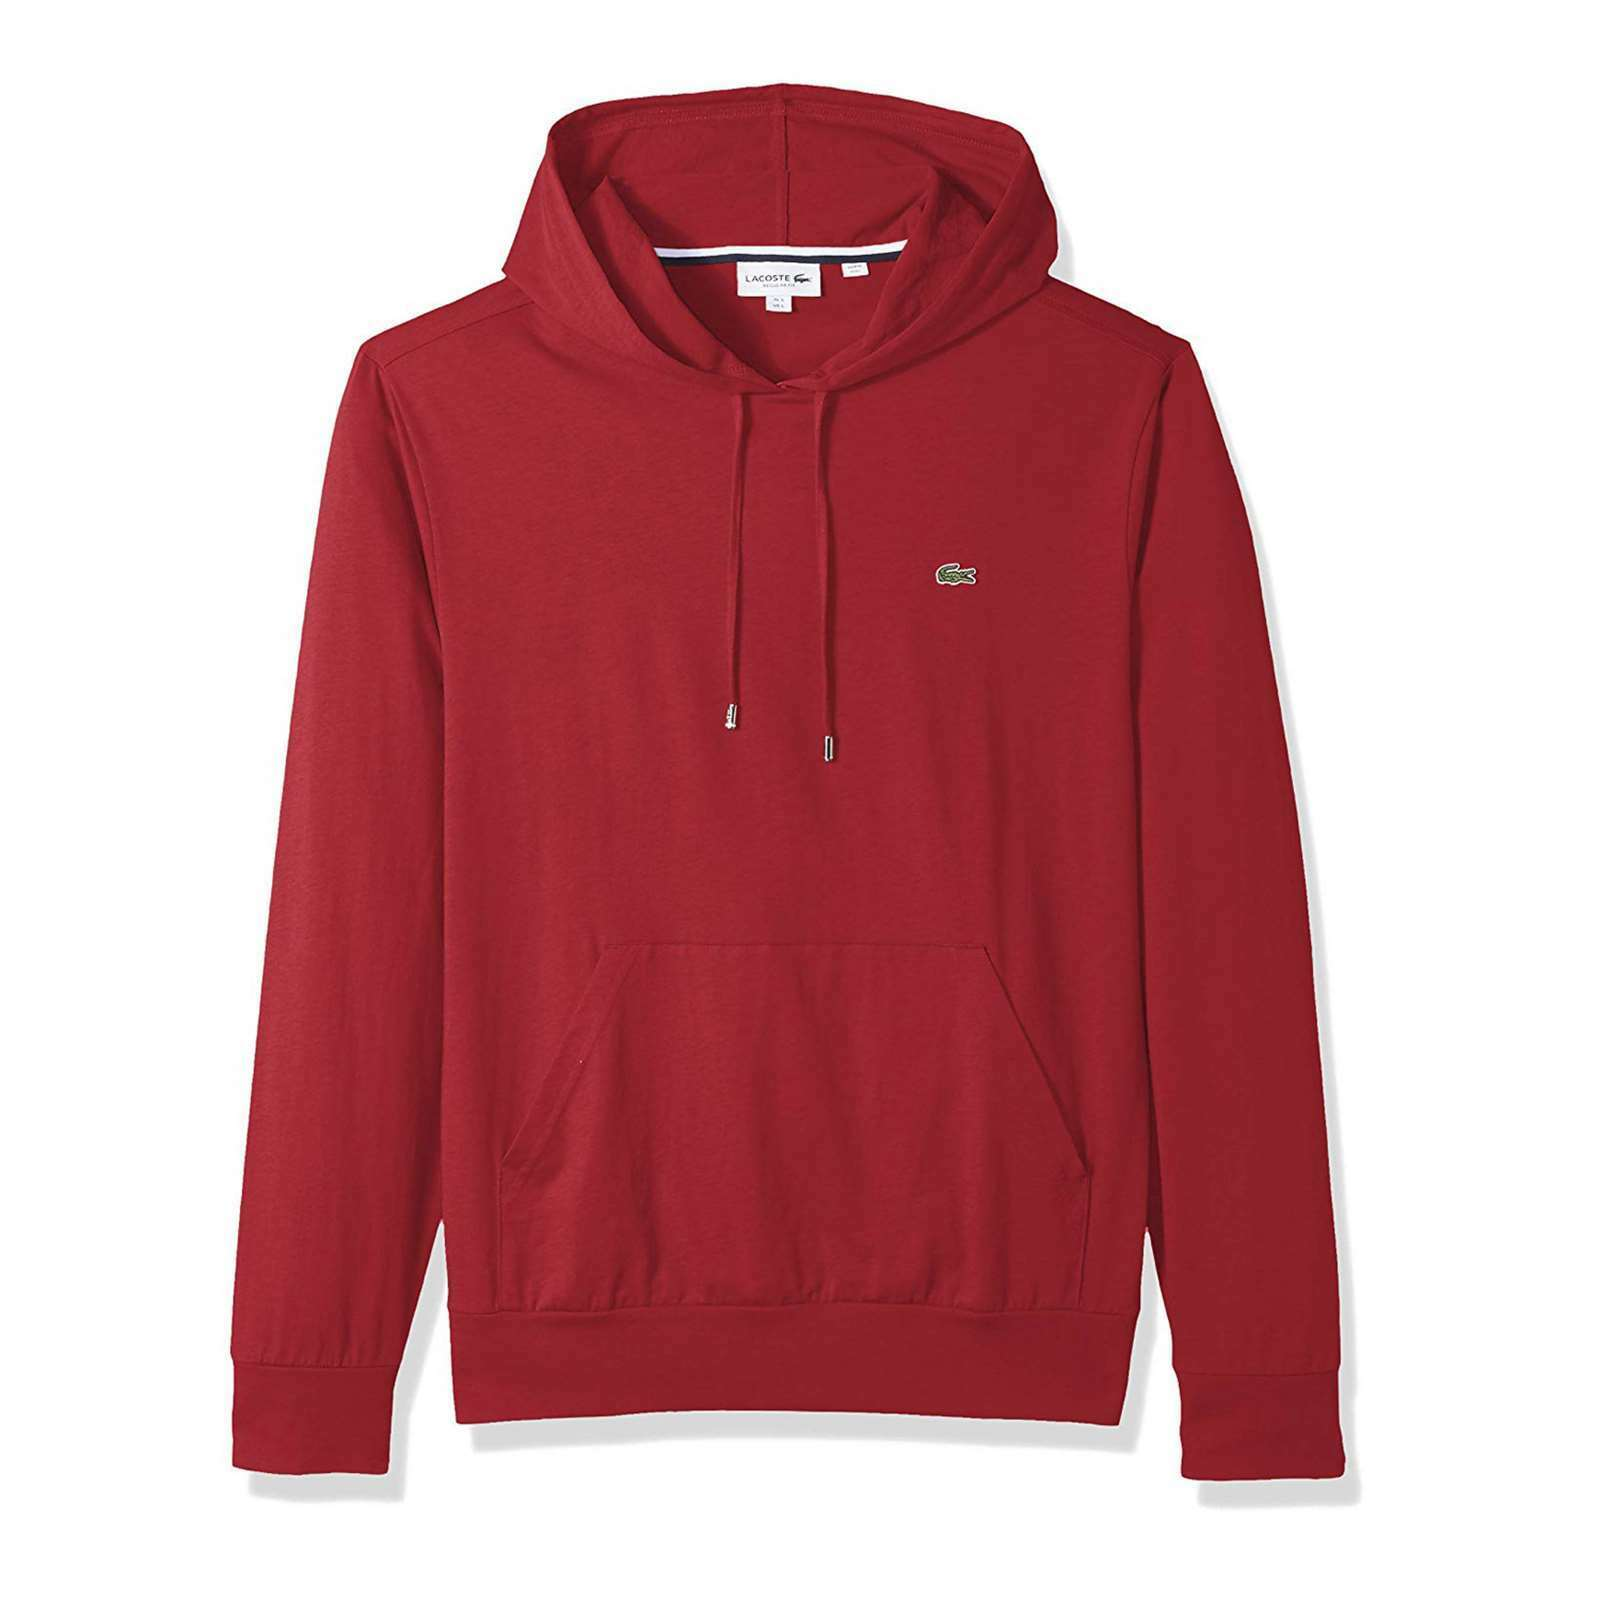 Herren Lacoste Hoodie ROT Pullover TH9349 2018 Collection NEW